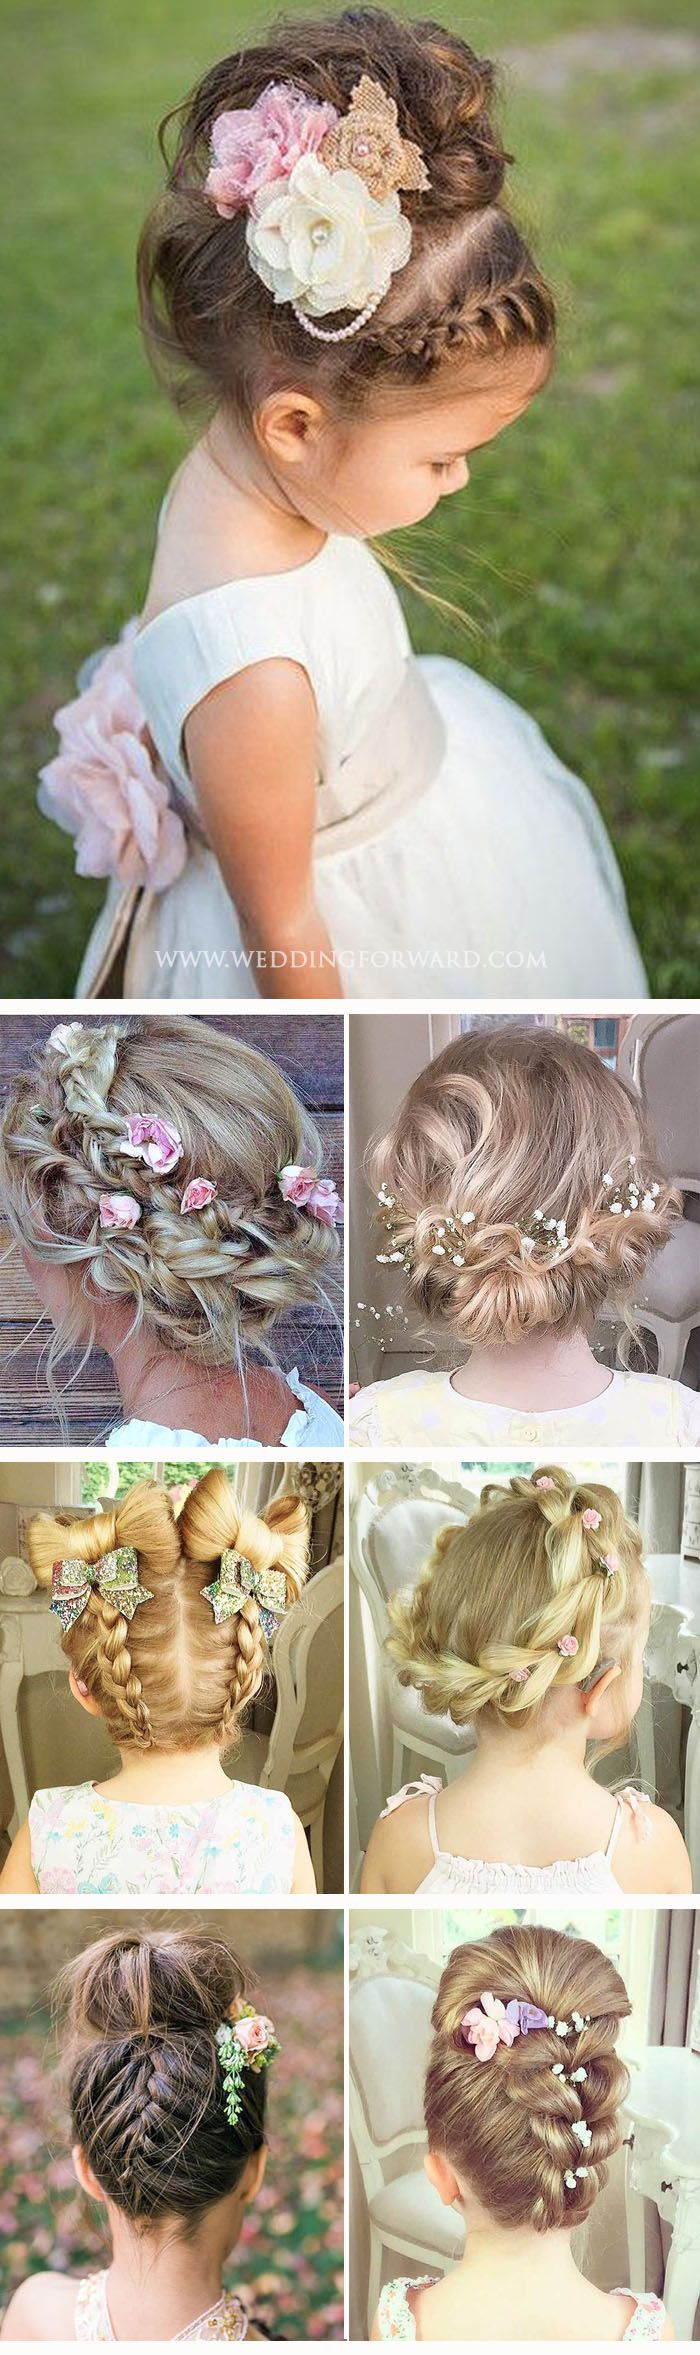 30 Cute Flower Girl Hairstyles ❤ Here you find some simple flower girl hairsty...